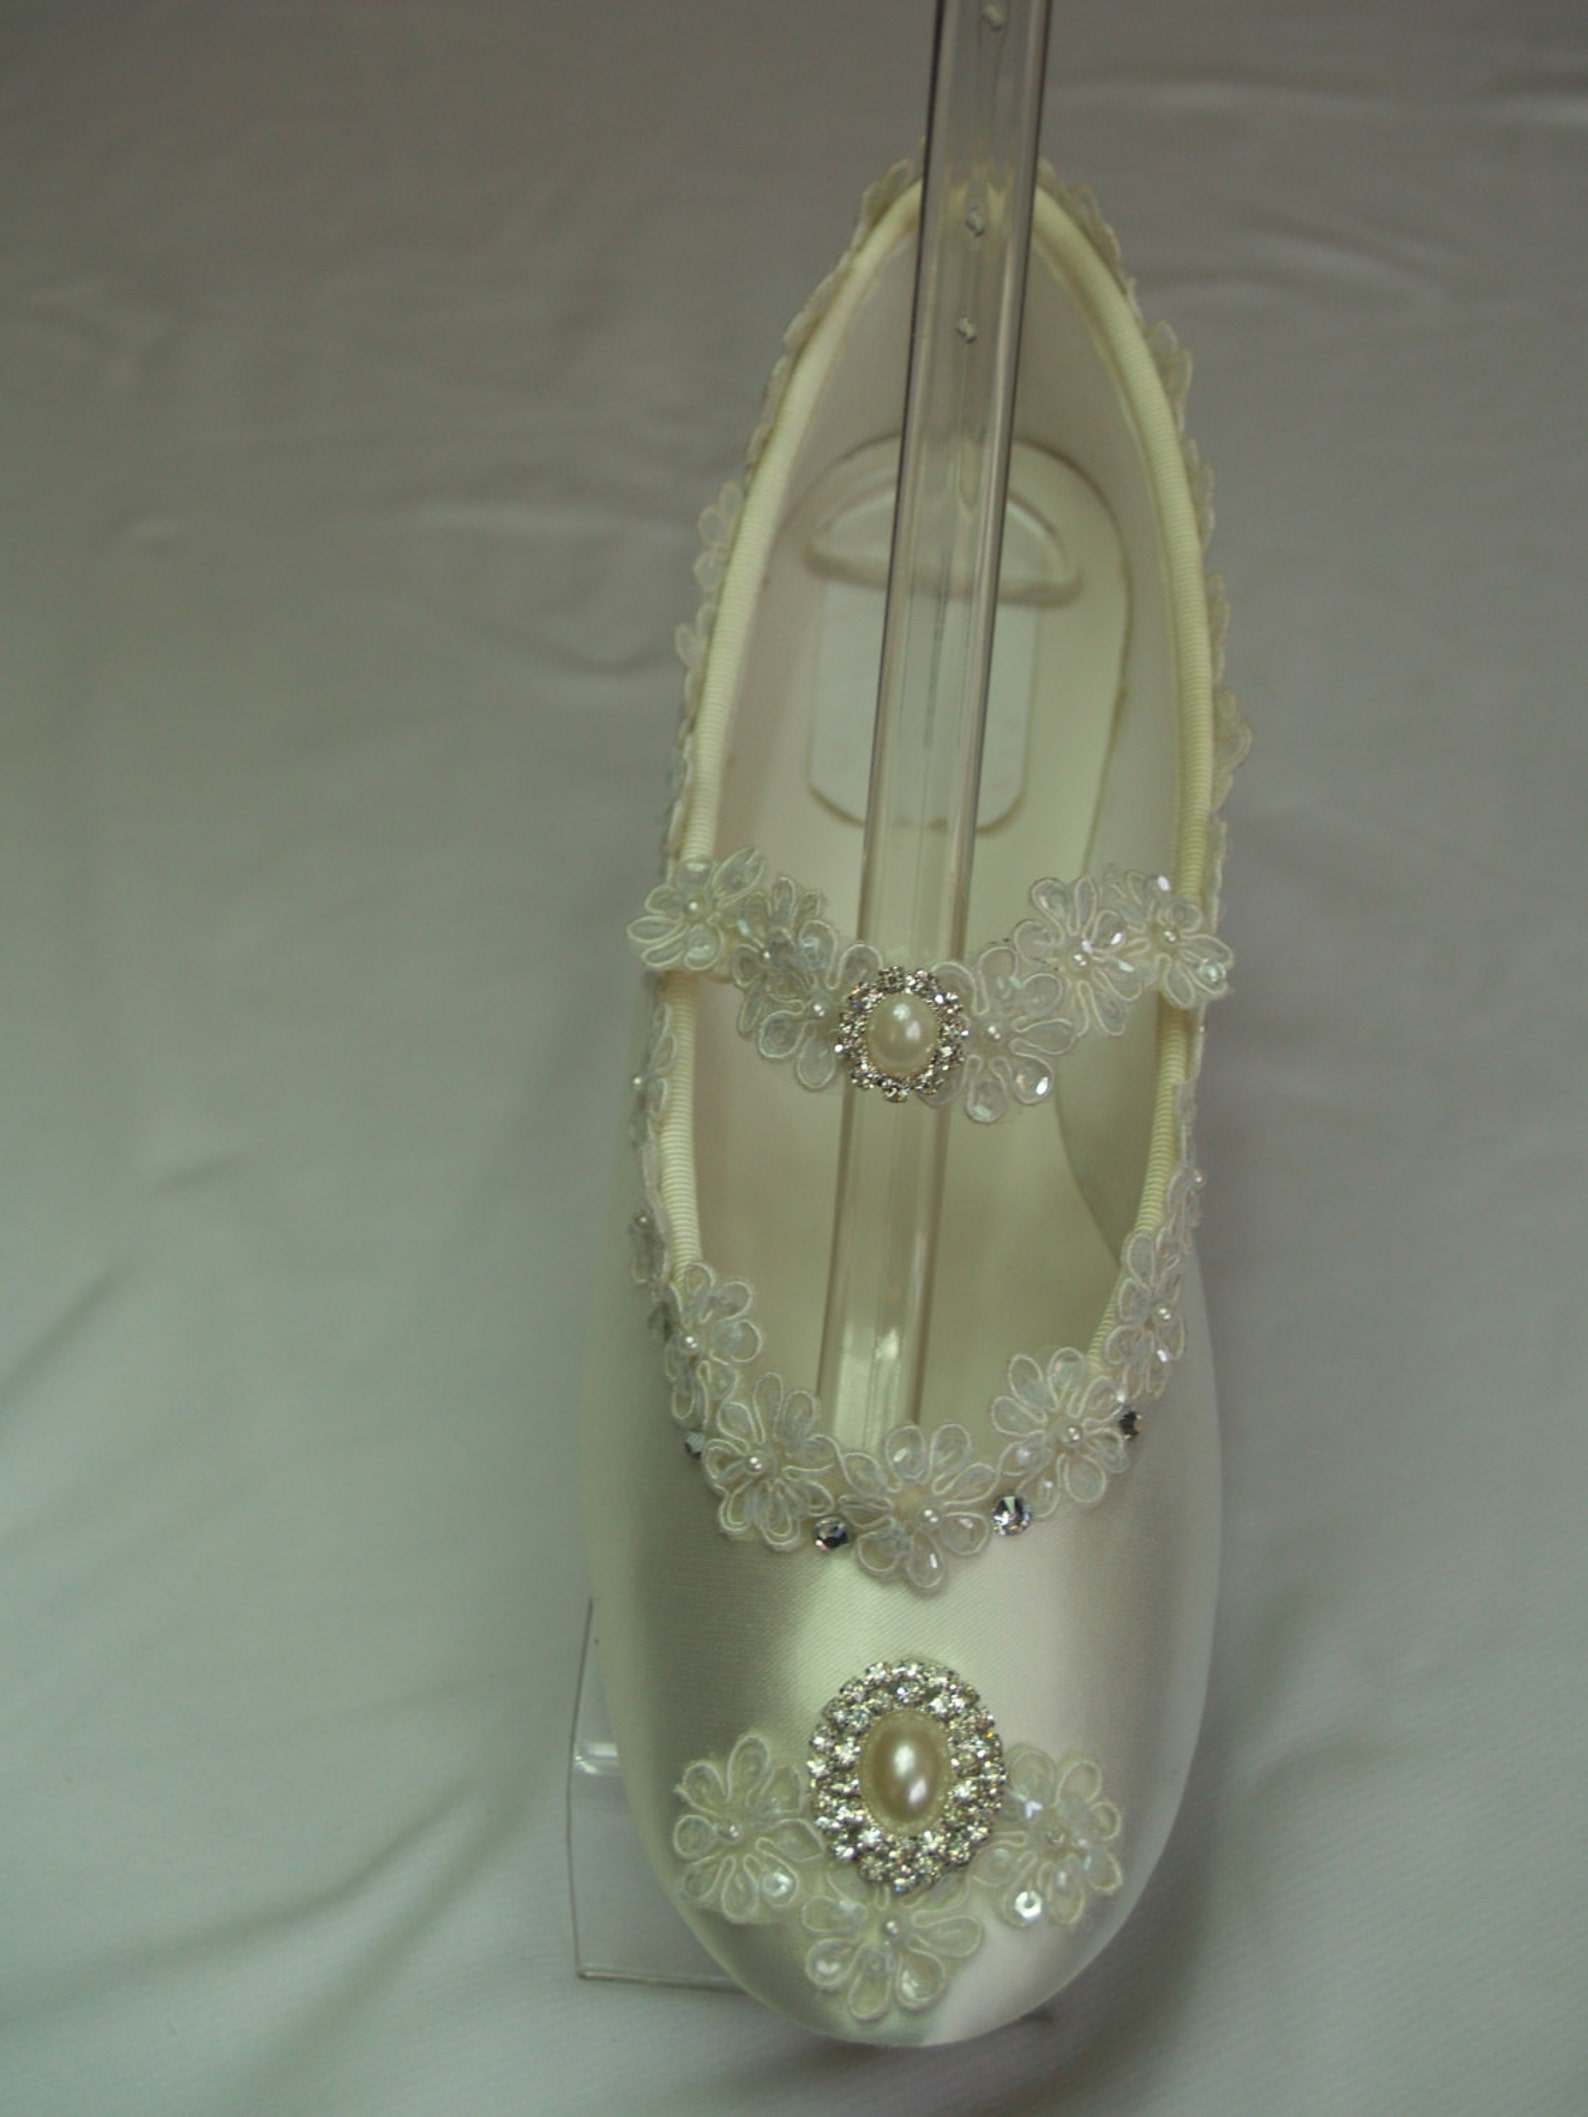 brides ivory flats marie antoinette, off white flats, victorian wedding shoes, ballet slipper embellished, retro style, victoria